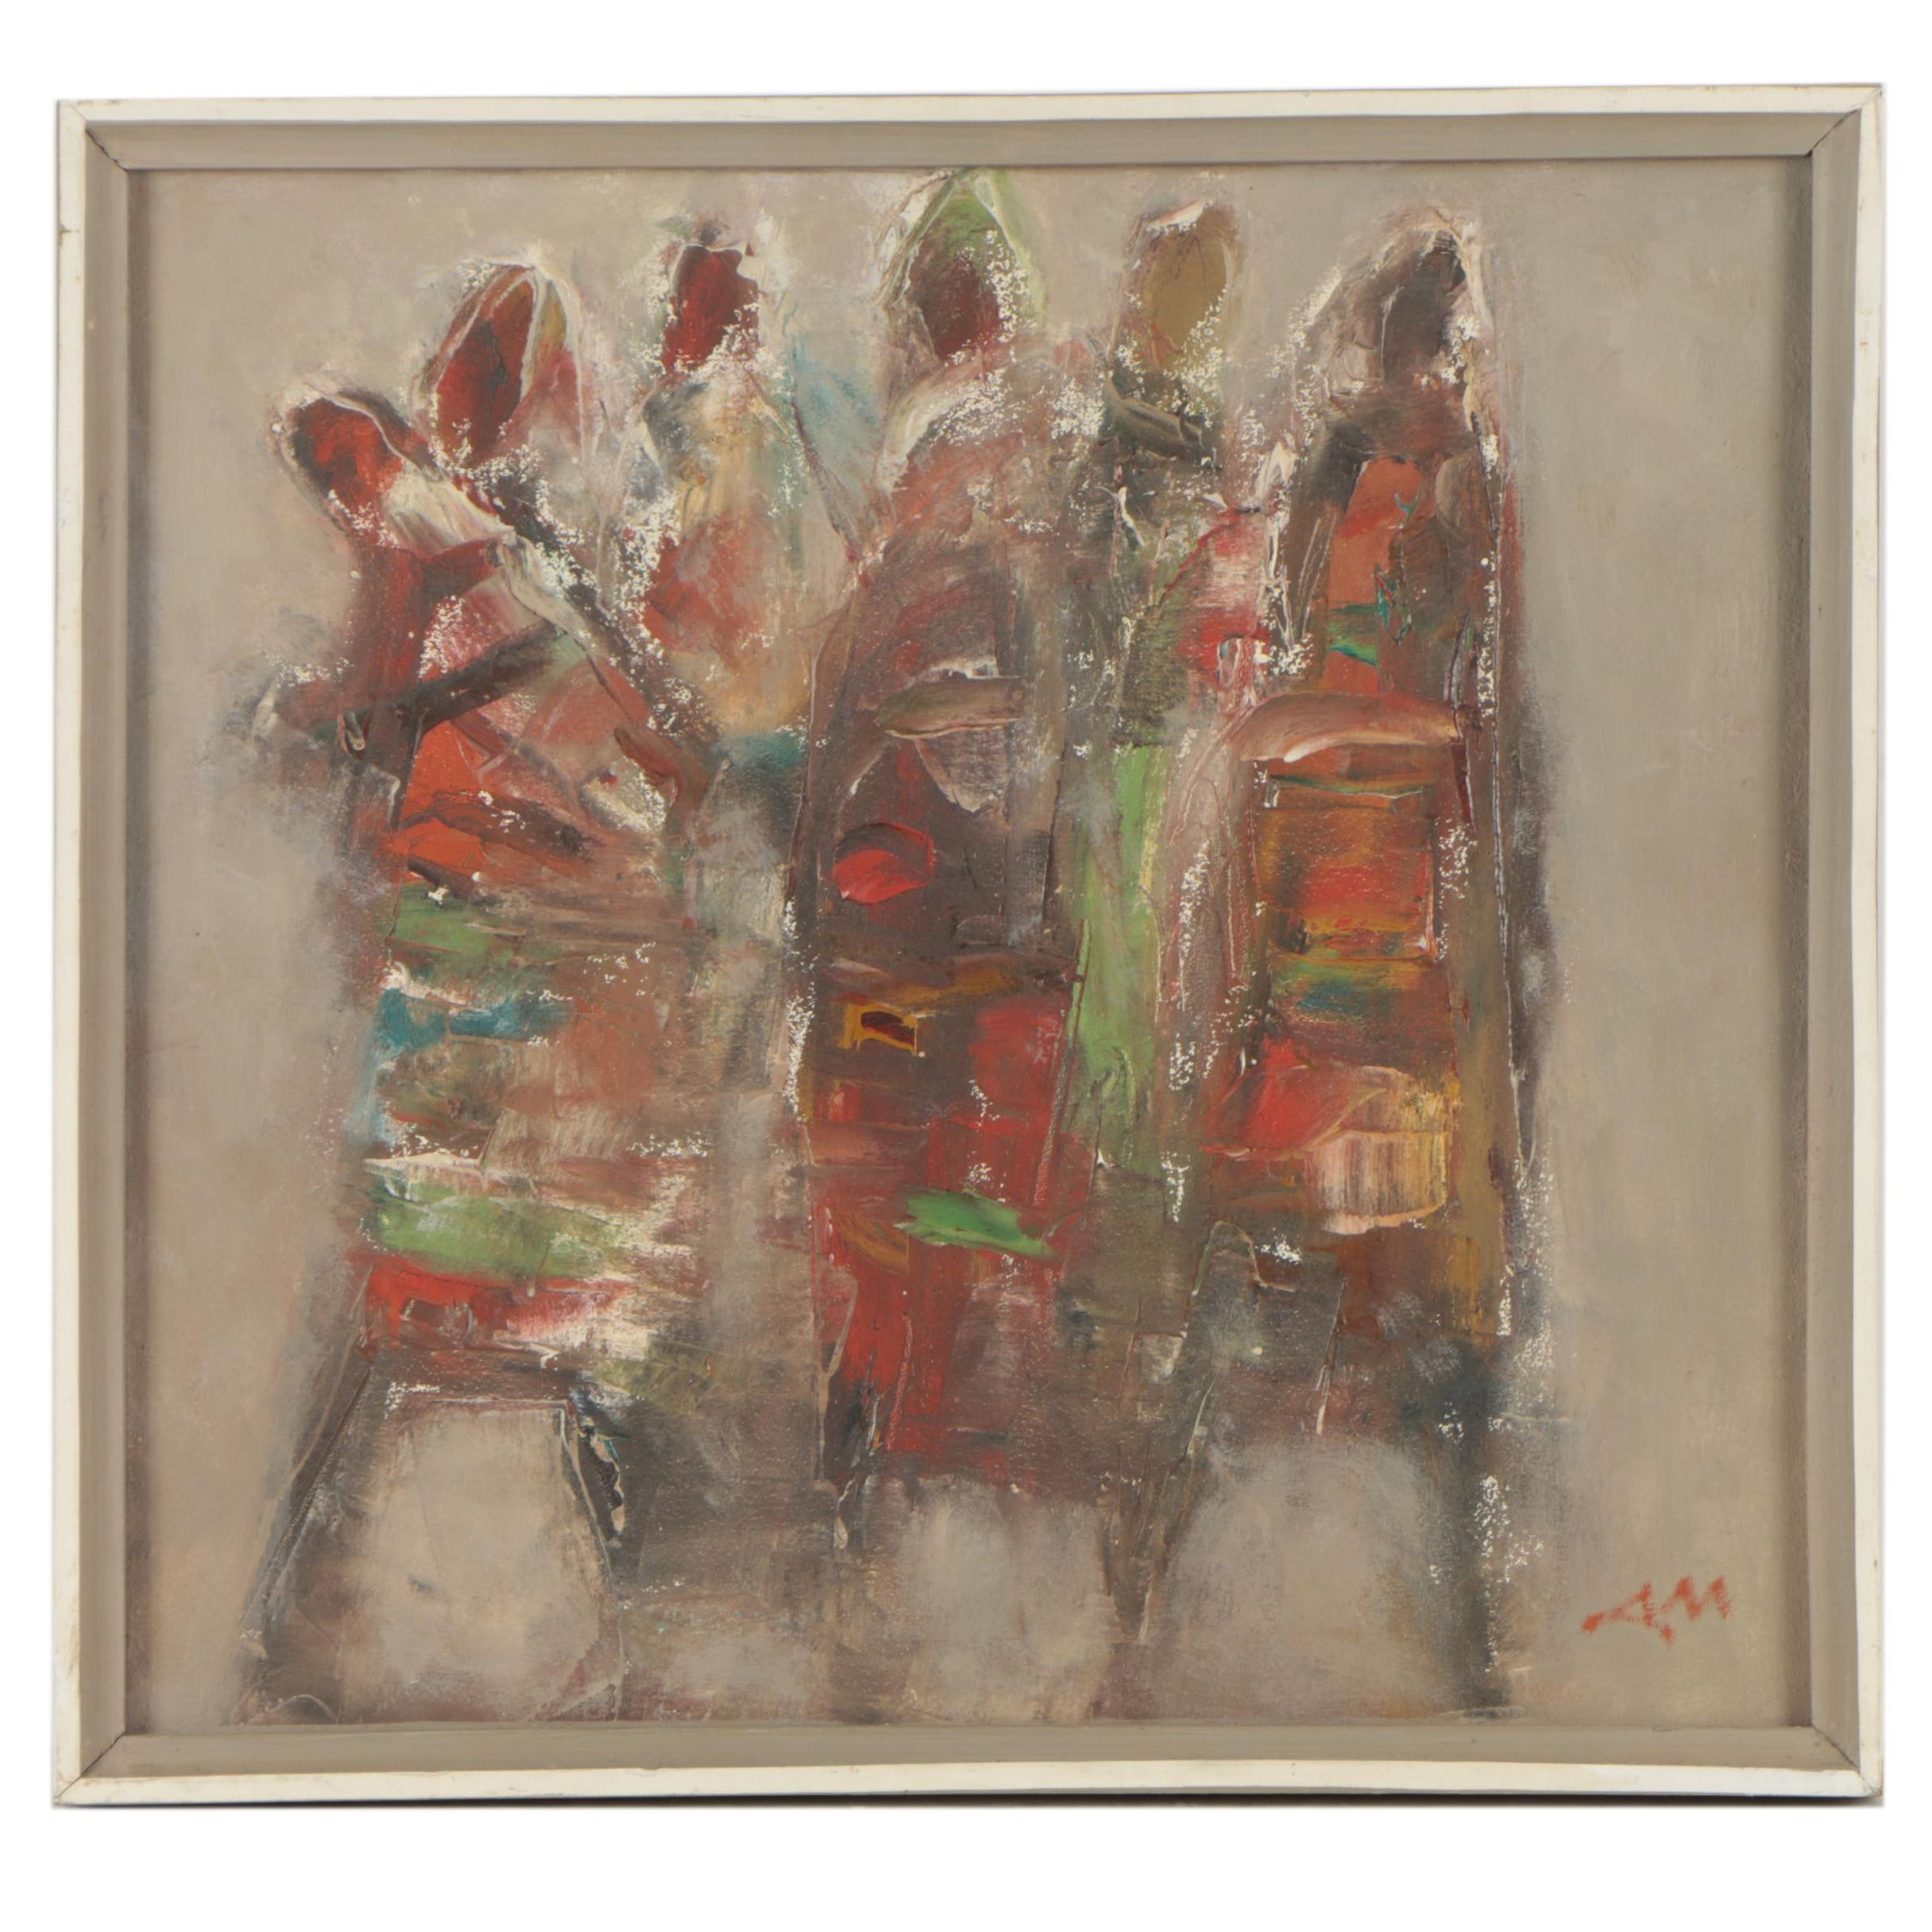 Abstract Oil Painting of Figures